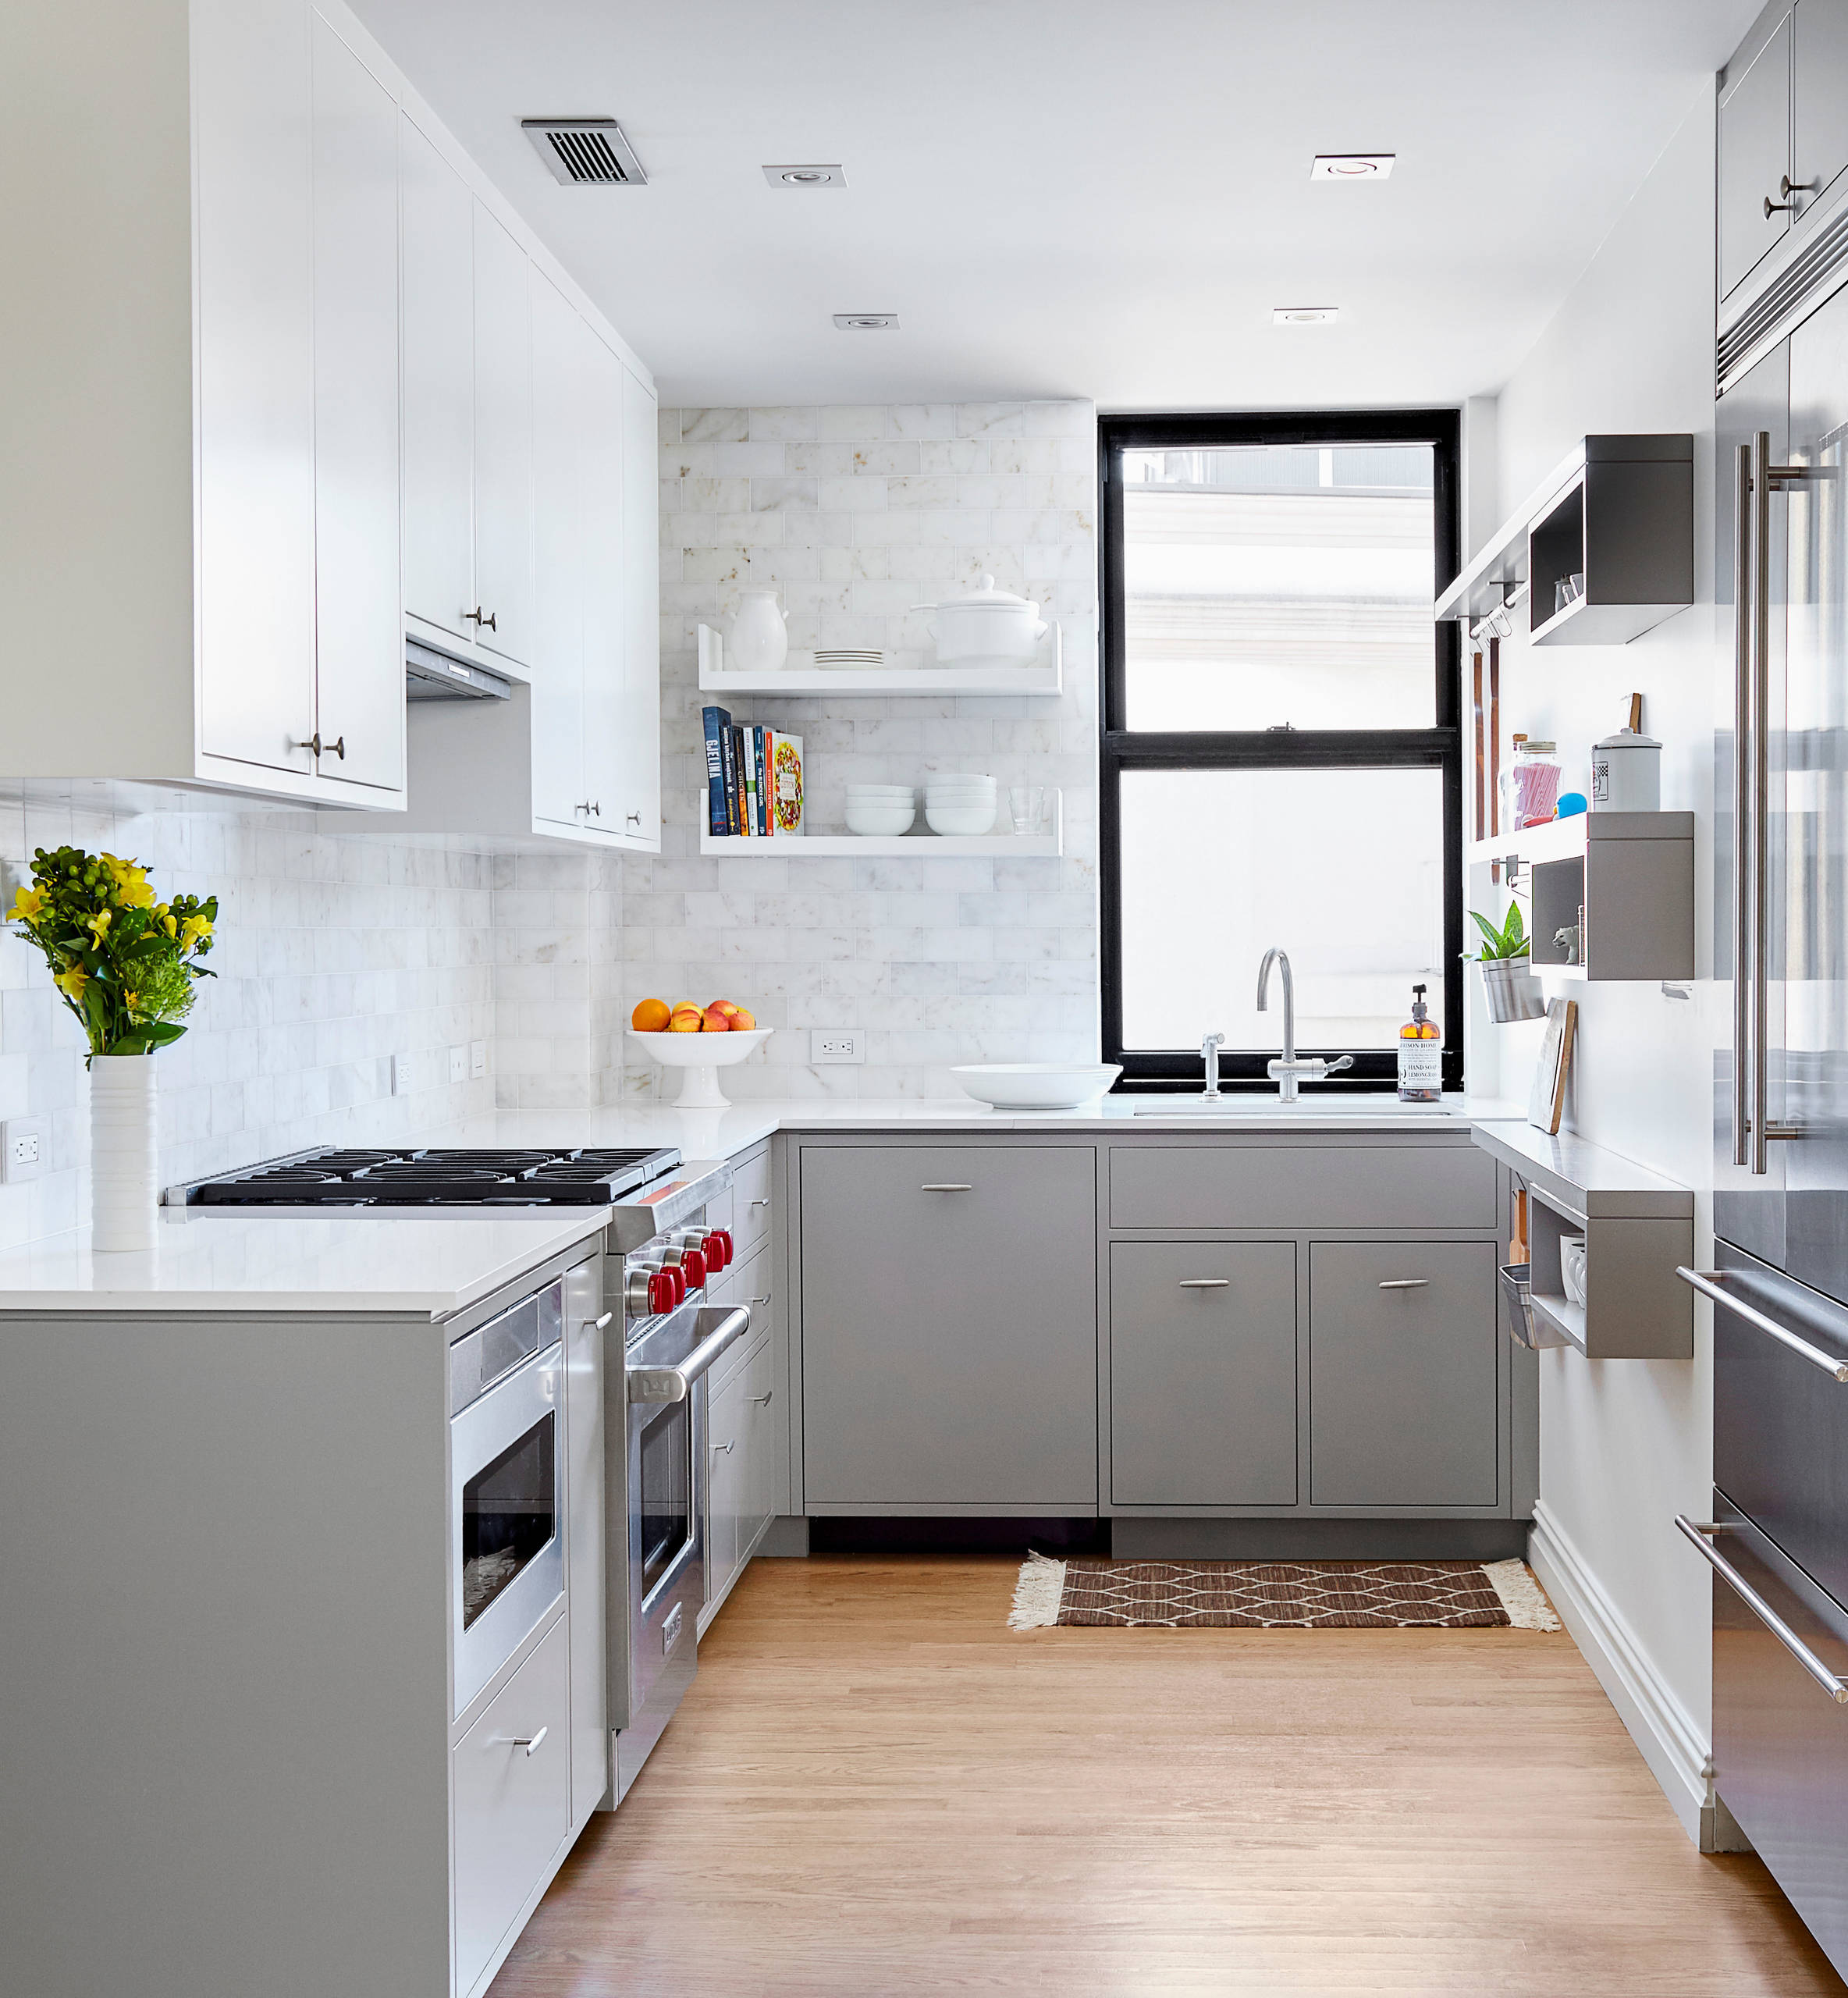 75 beautiful small white kitchen pictures & ideas - august